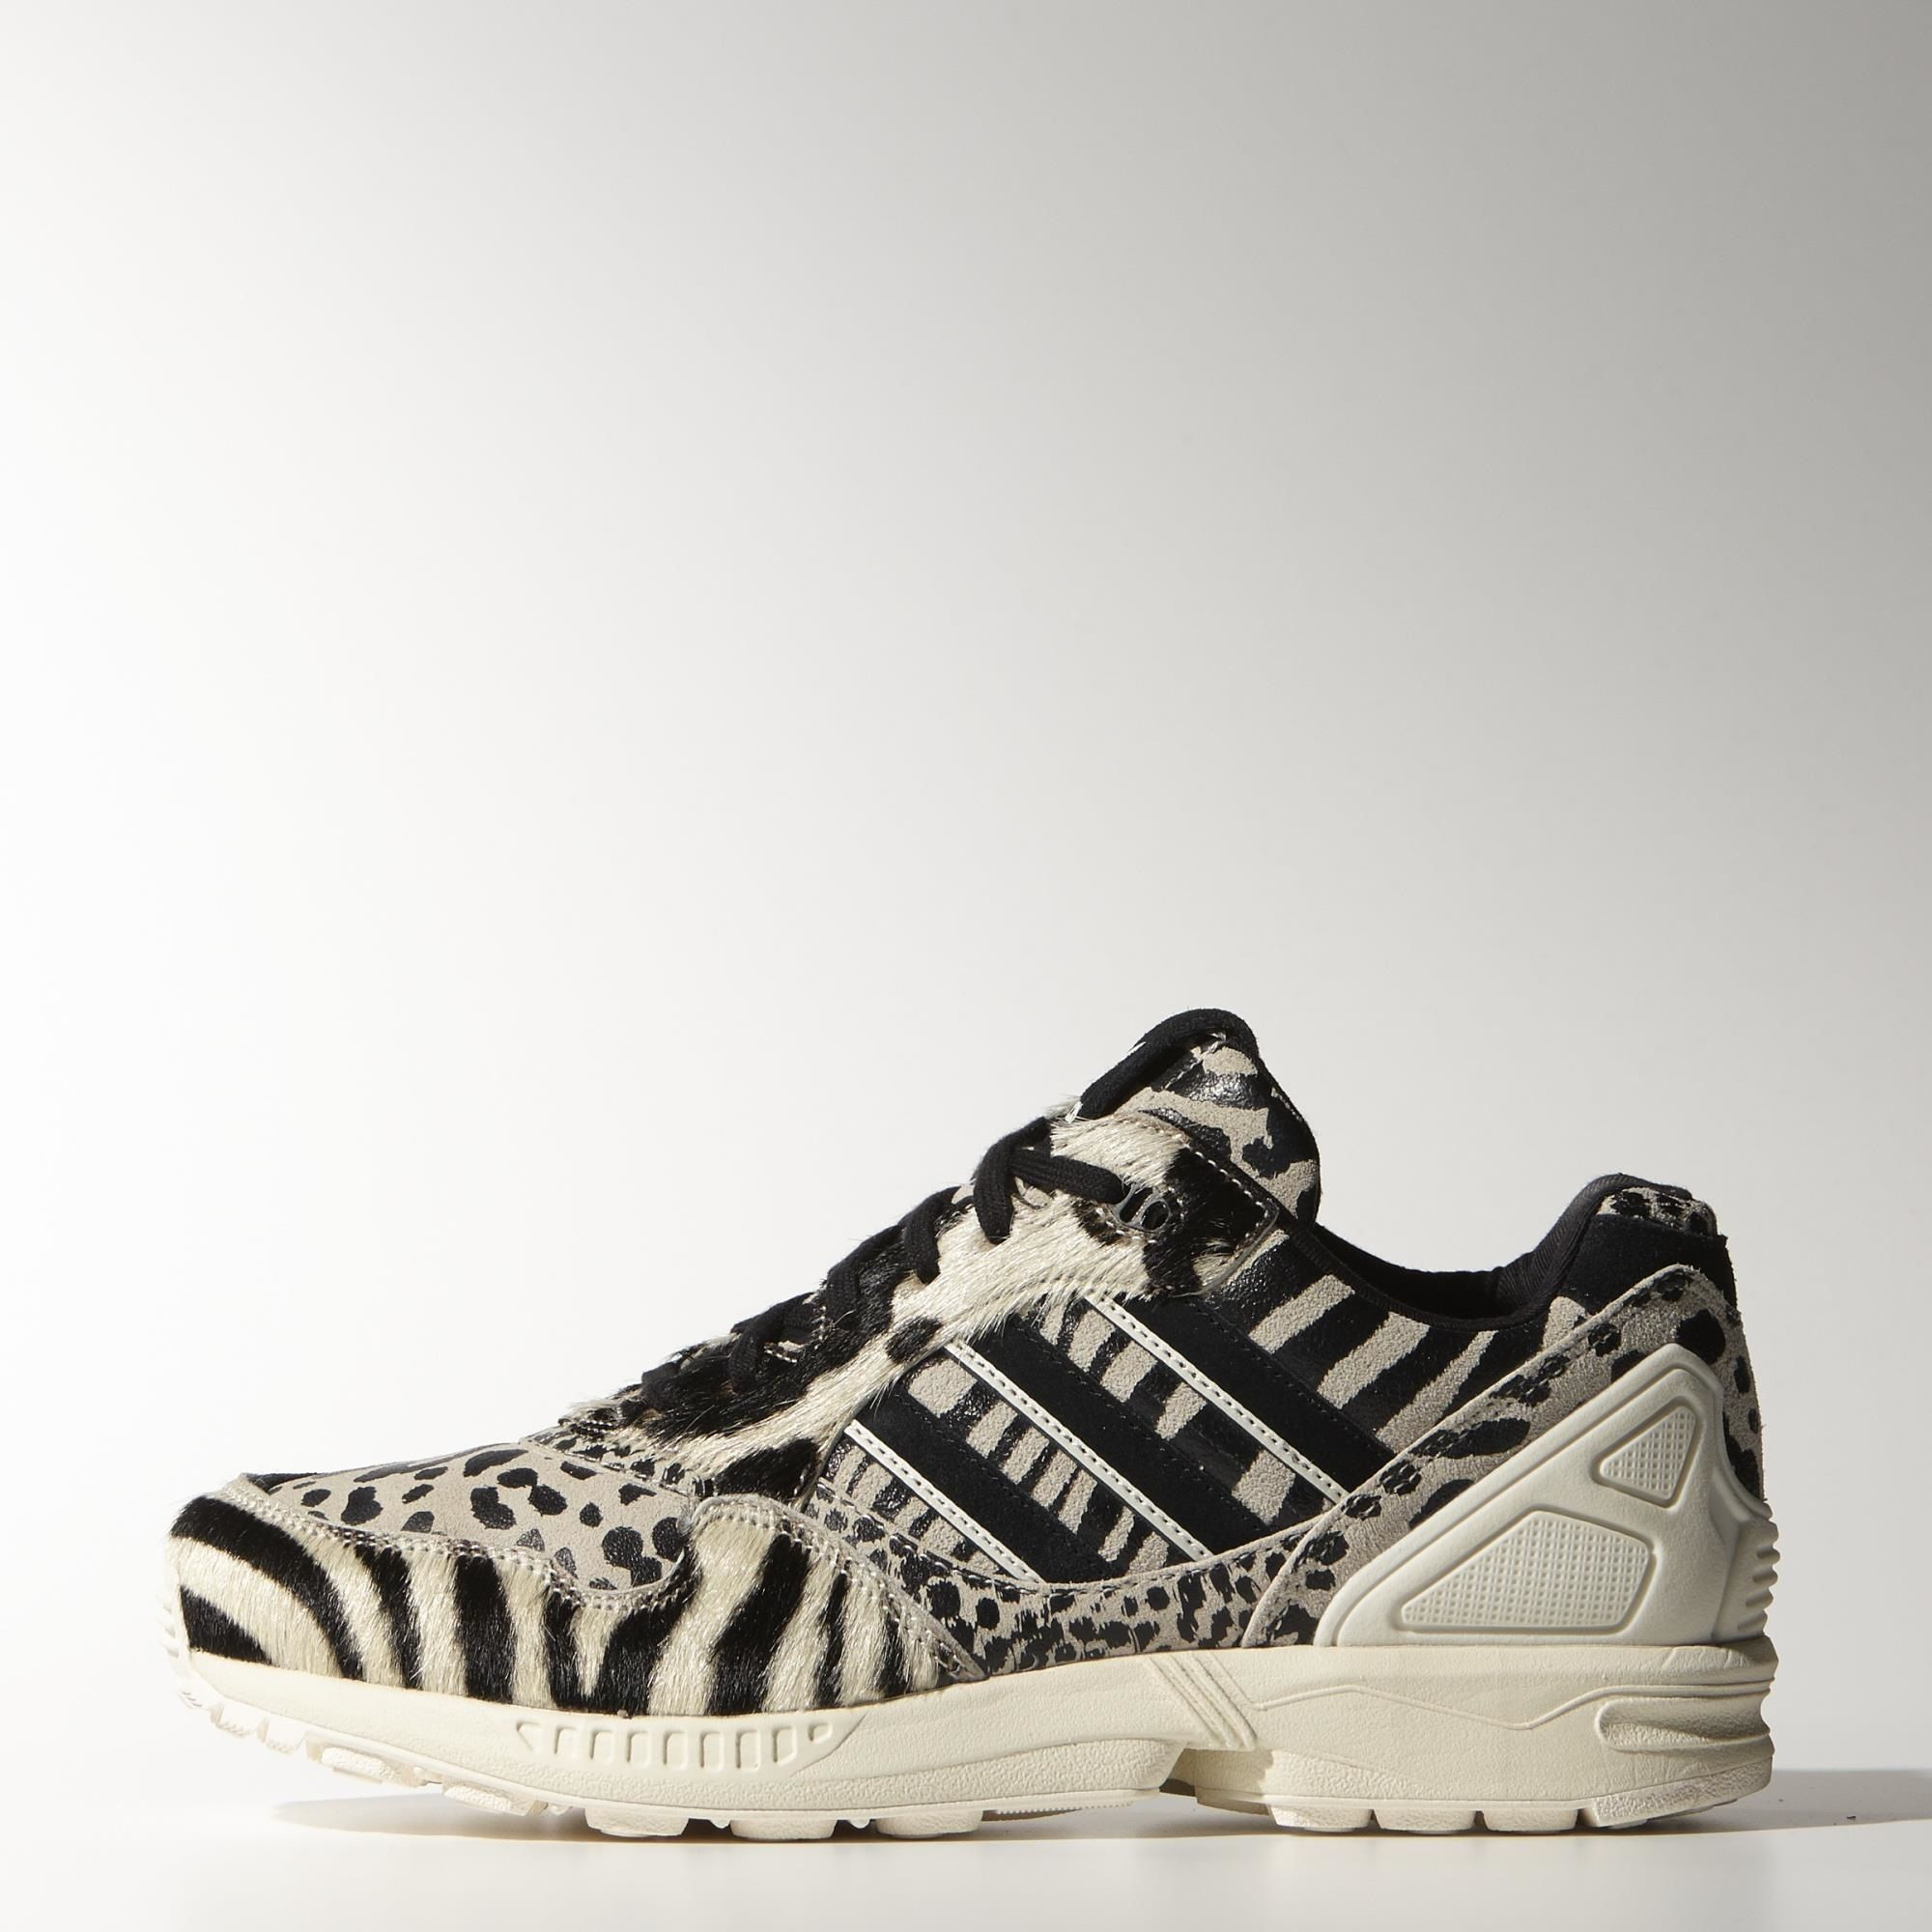 d73c2a25e The retro style of the ZX runner goes on safari with a wild animal print on  the suede and pony-hair leather upper. These women s shoes feature suede a  ZX ...